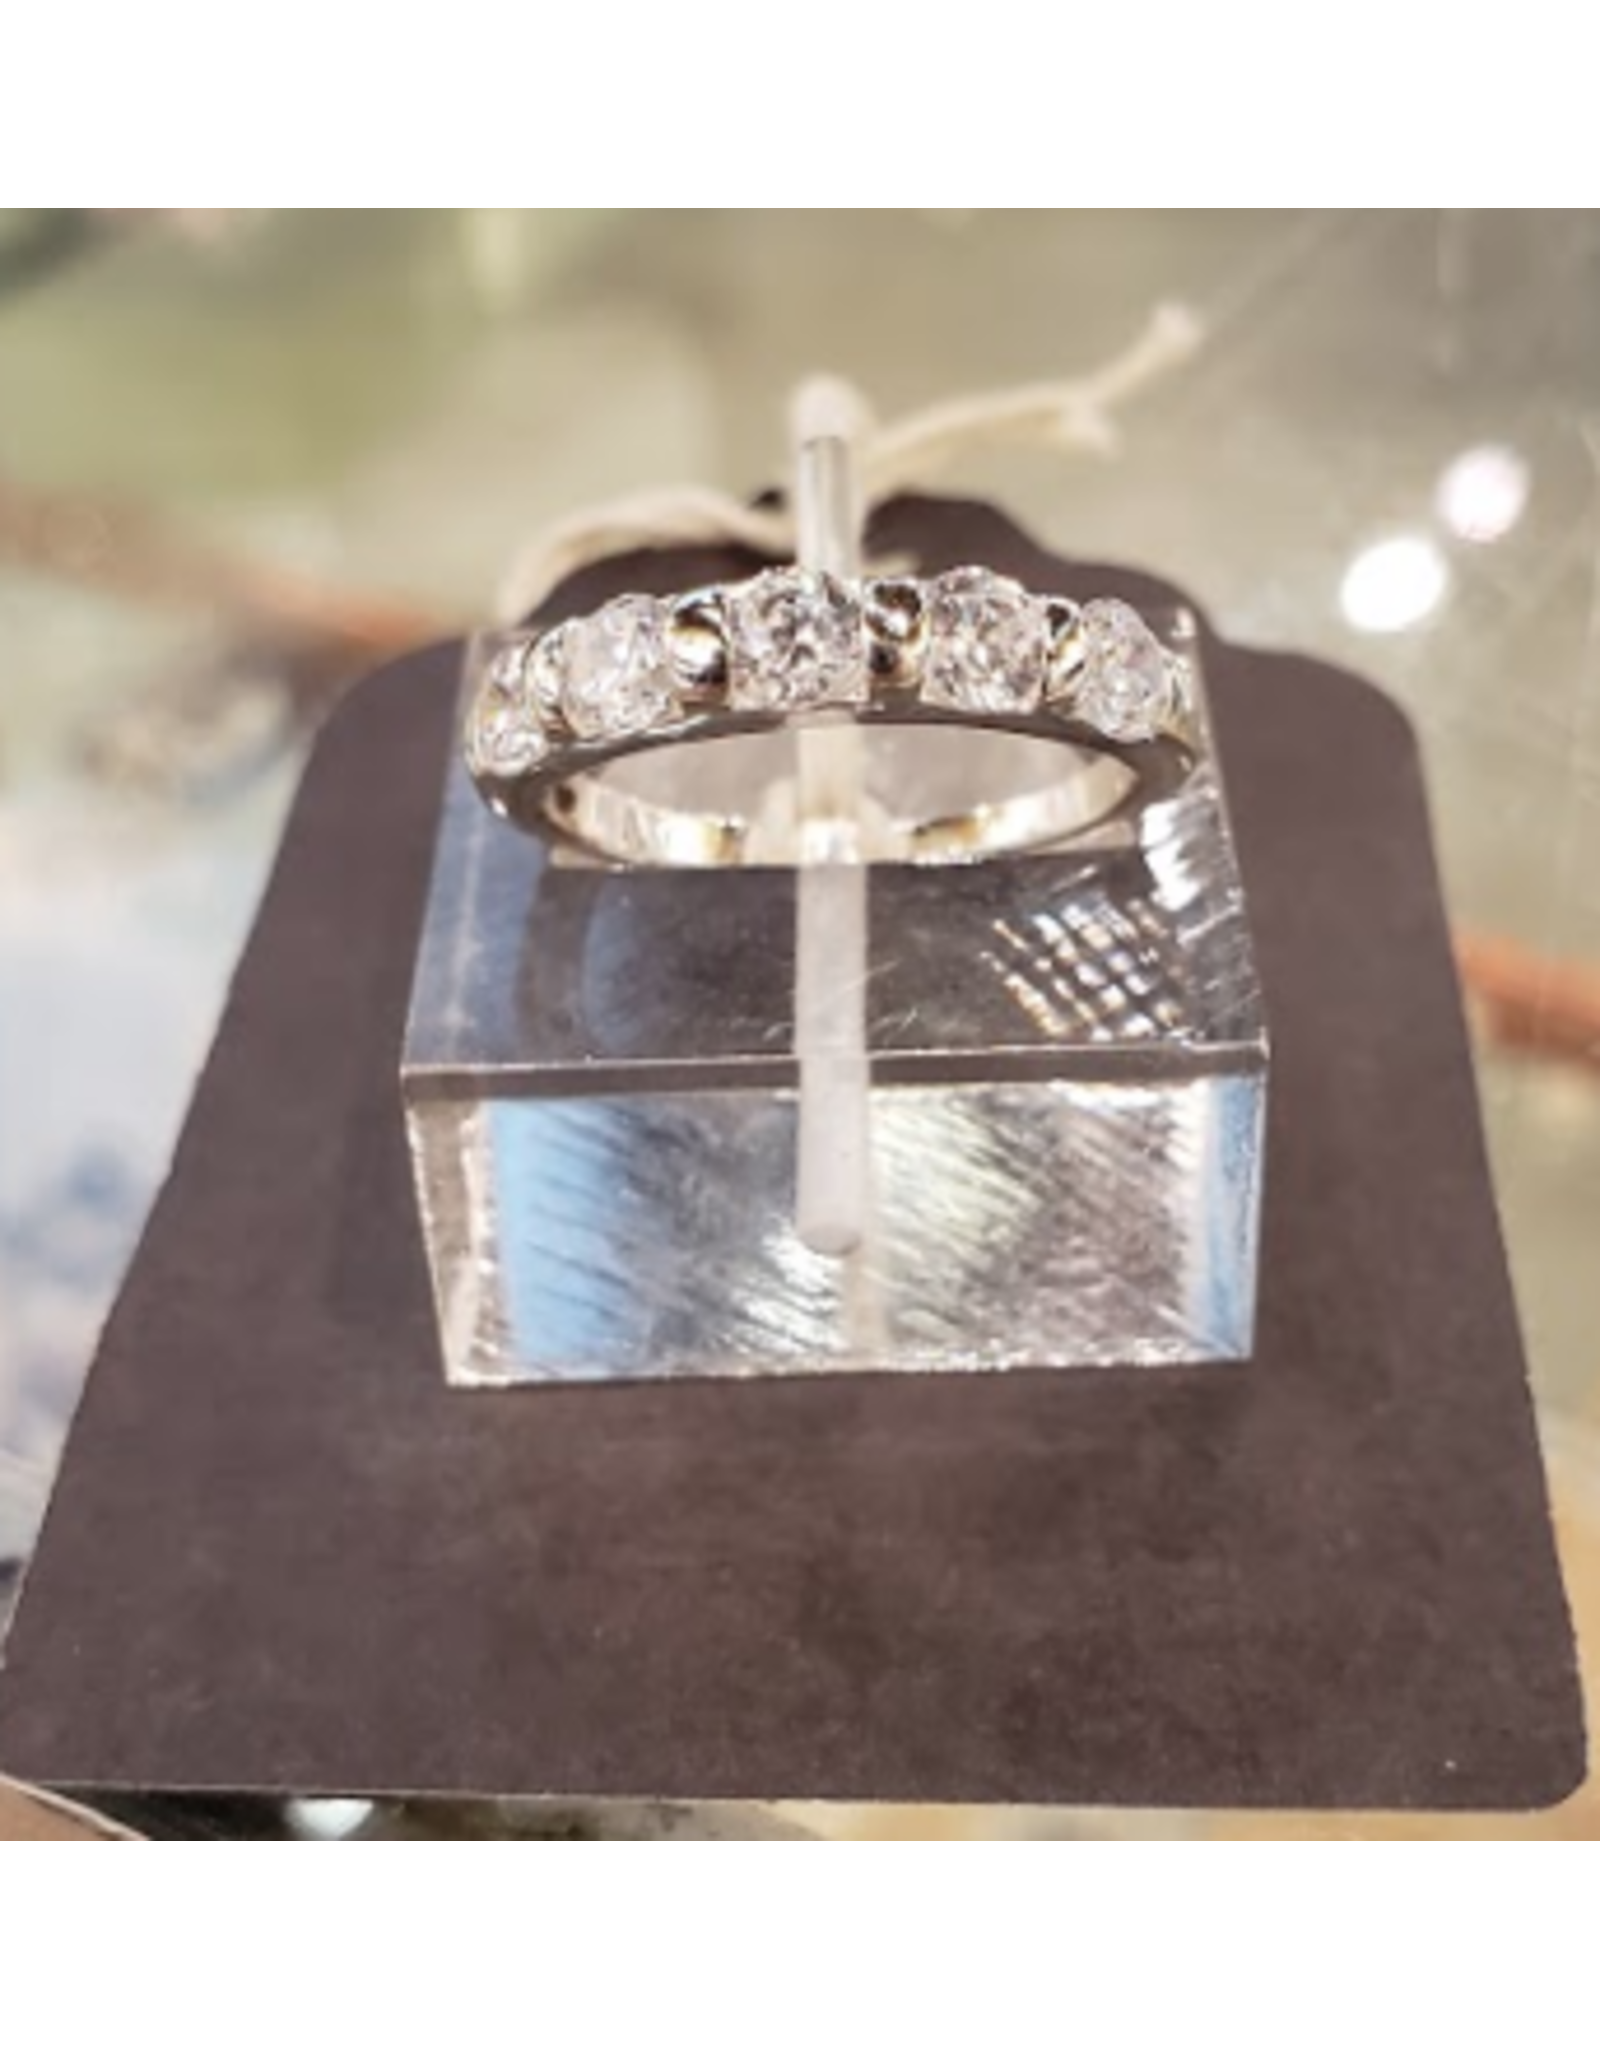 Chris Gillrie 5 Shimmering Cubic Zirconia Ring. Set in Soild Silver with Rhodium Plating. Size 7